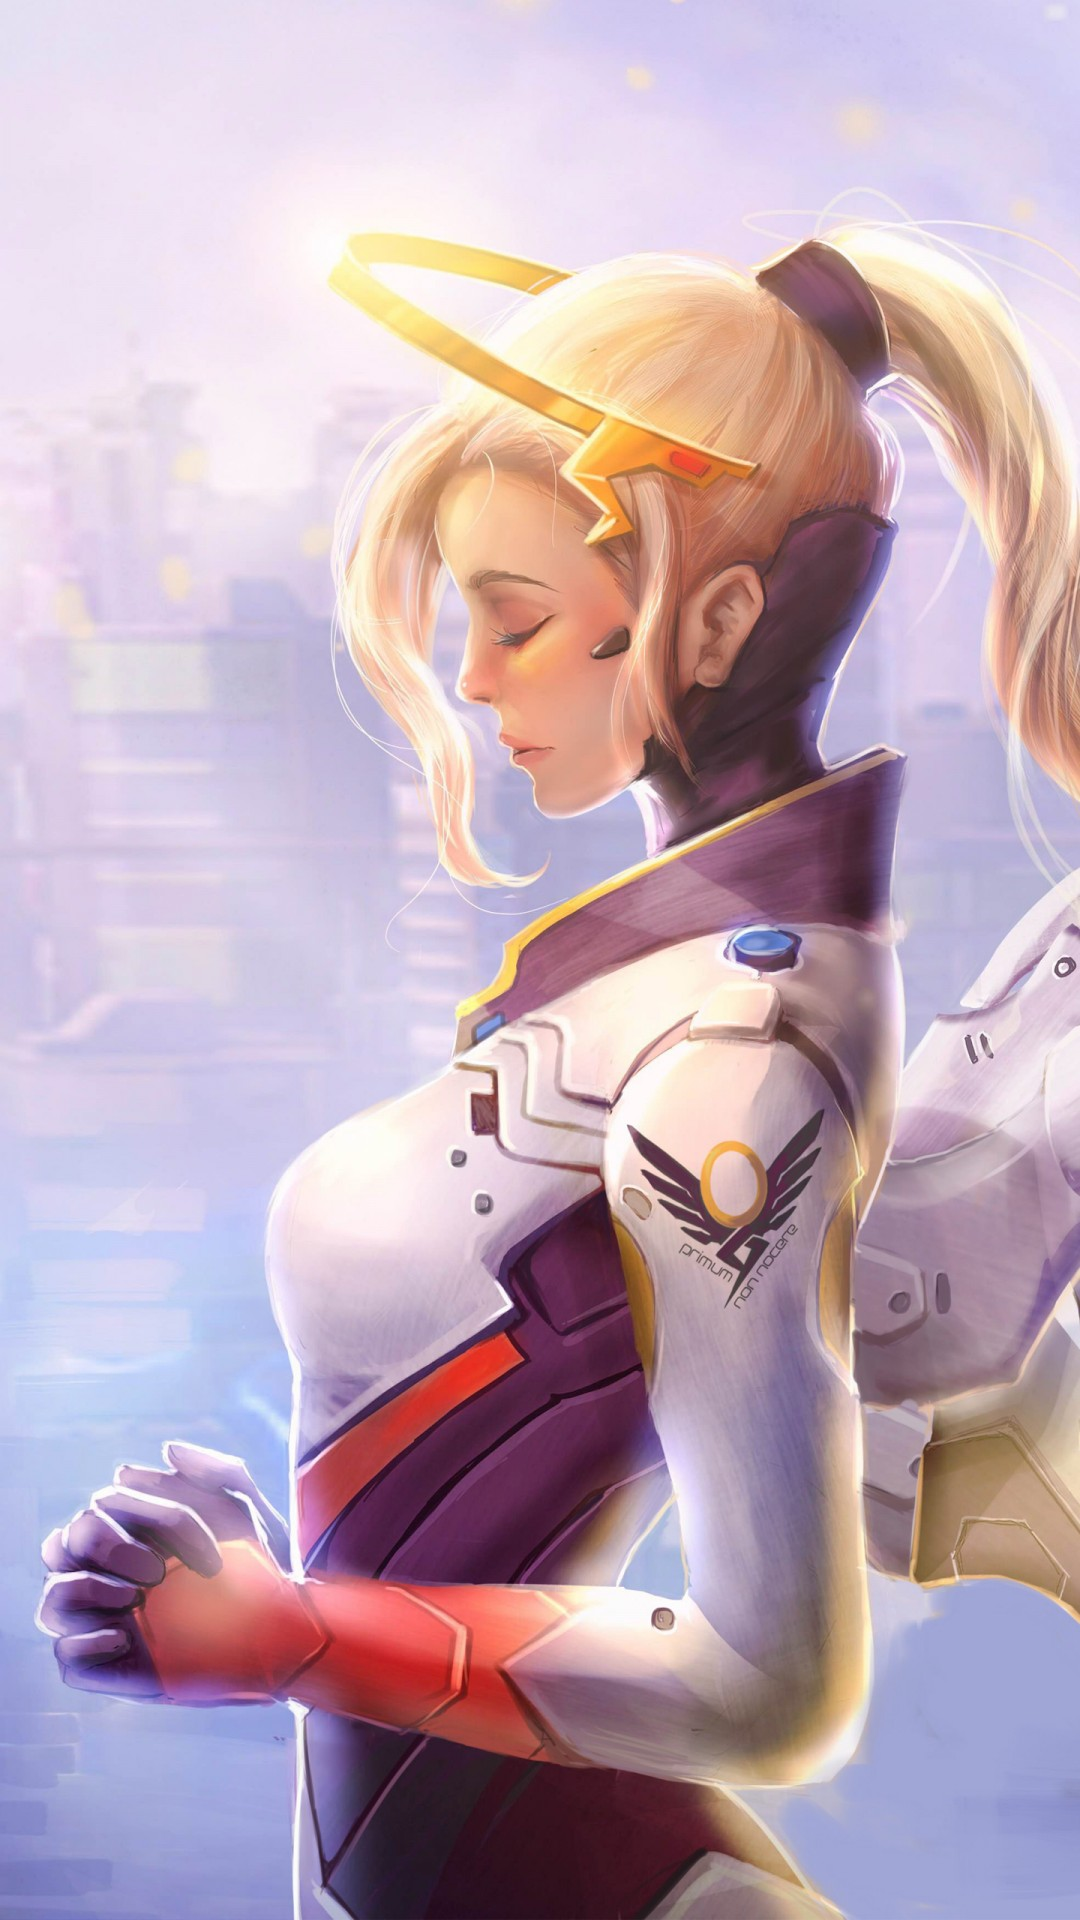 Iphone 6s Wallpaper Hd Mercy Overwatch Artwork 4k Wallpapers Hd Wallpapers Id